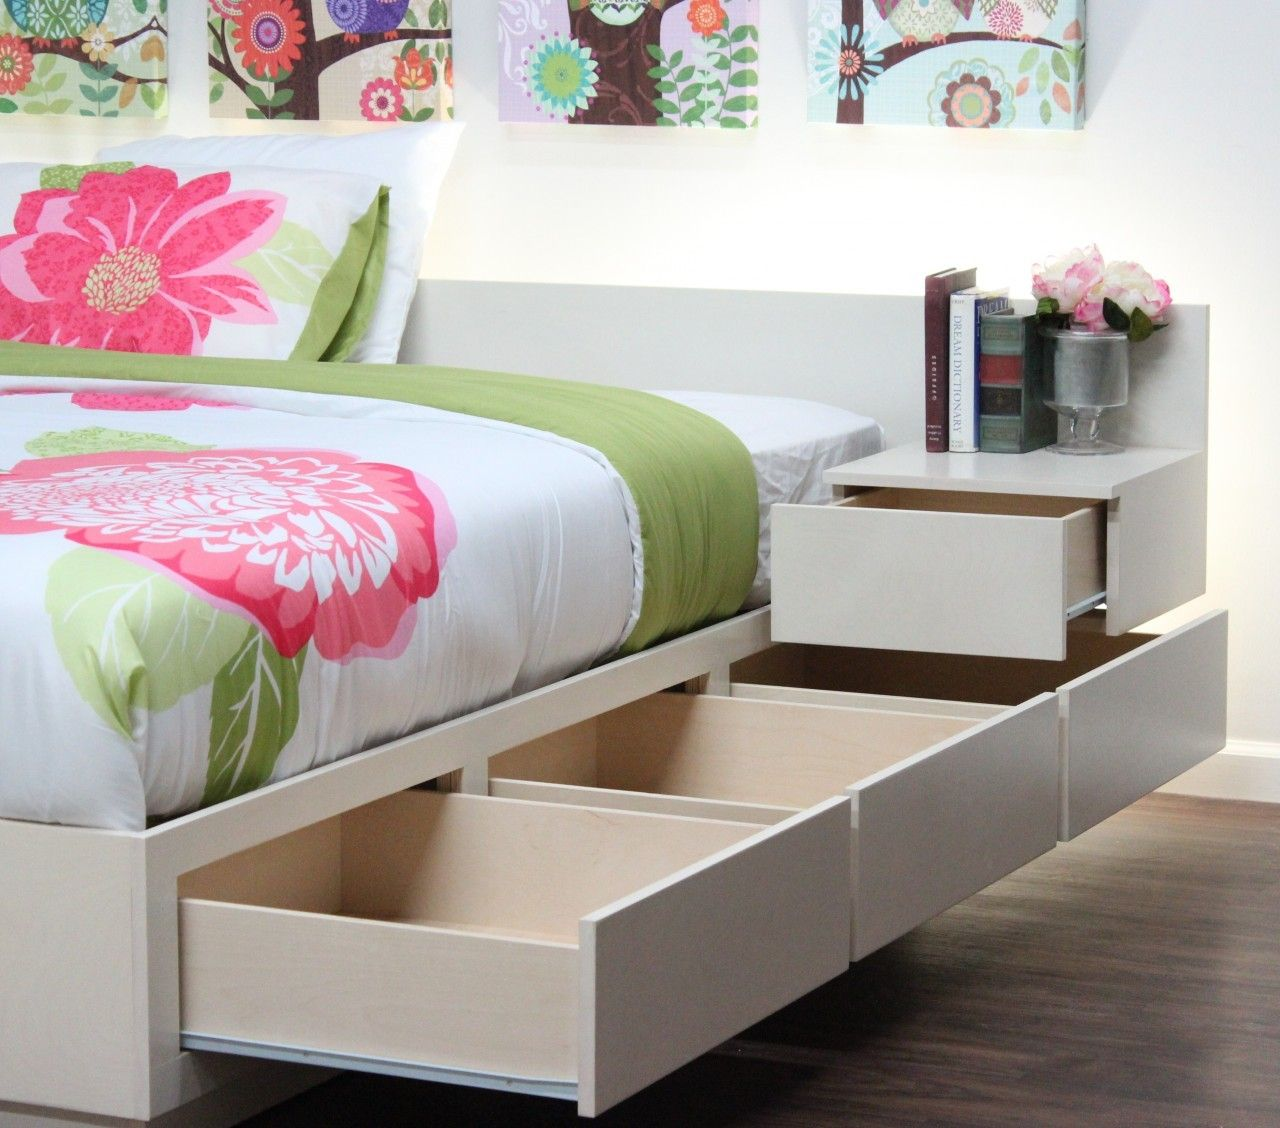 XL Twin Captains Bed 3 Drawers Tracks Birch Wood